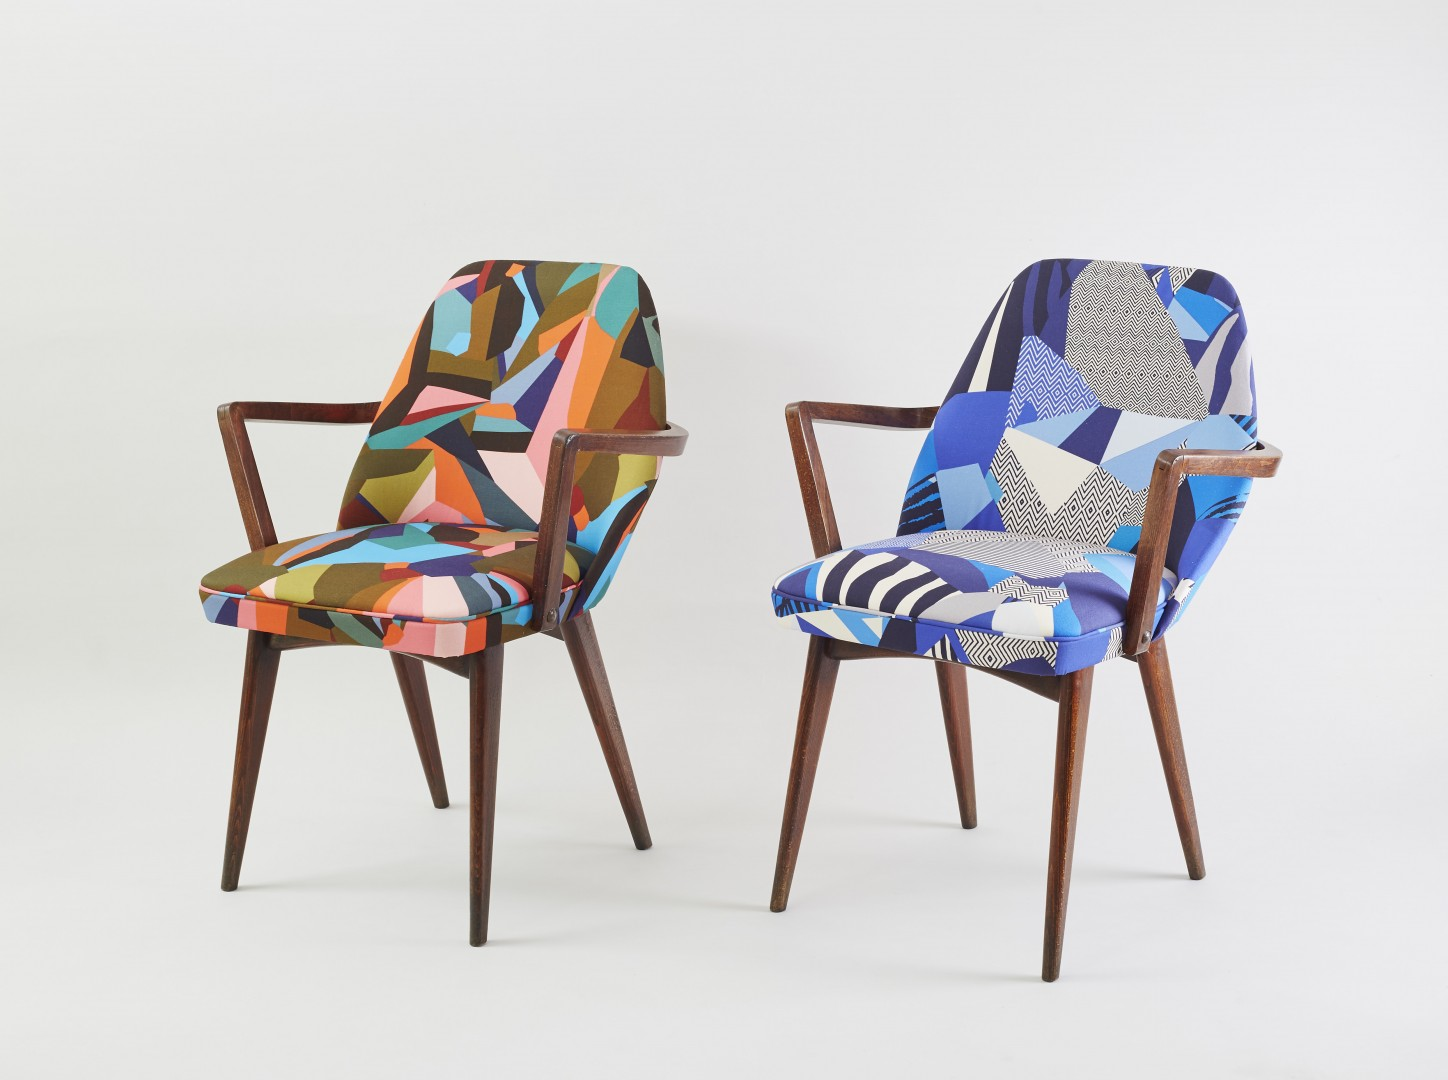 Furniture by Kitty McCall